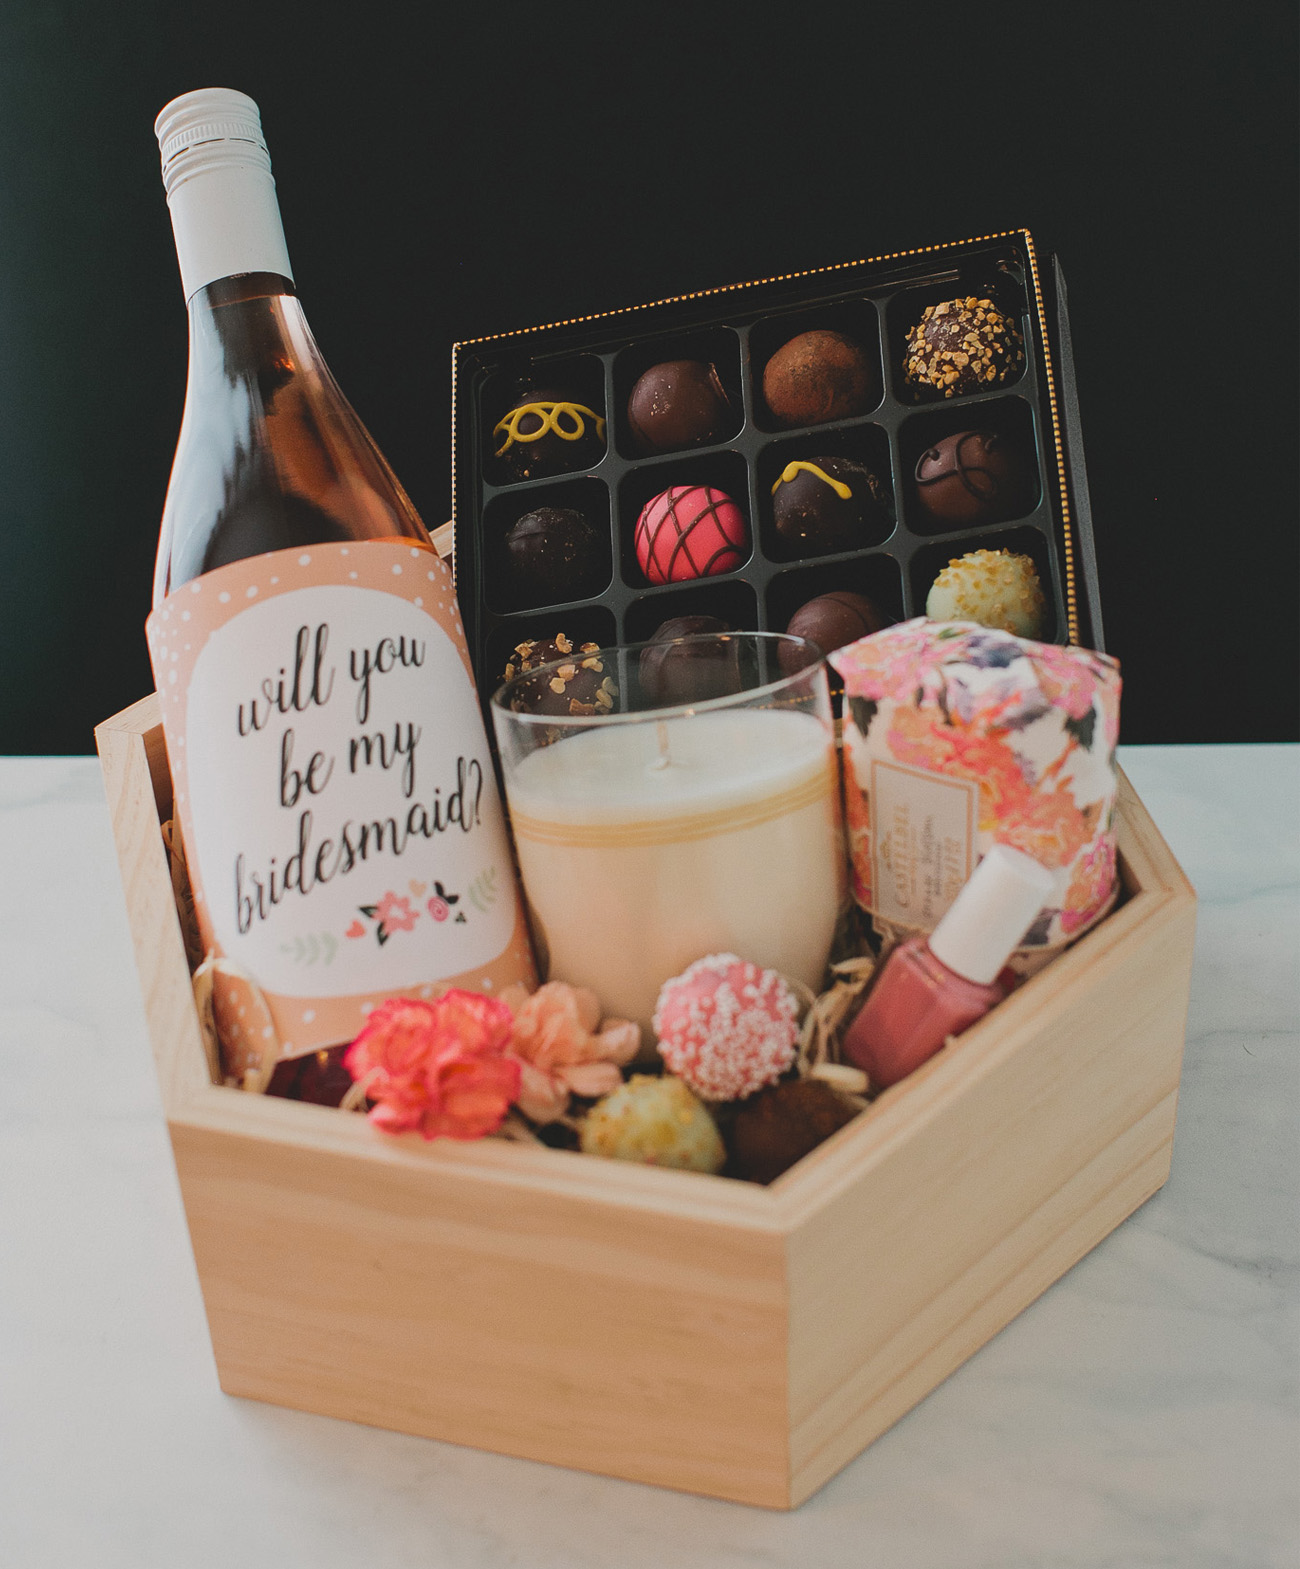 Wedding Gift Ideas For Bridesmaids: DIY Bridesmaid Gift Box With Godiva